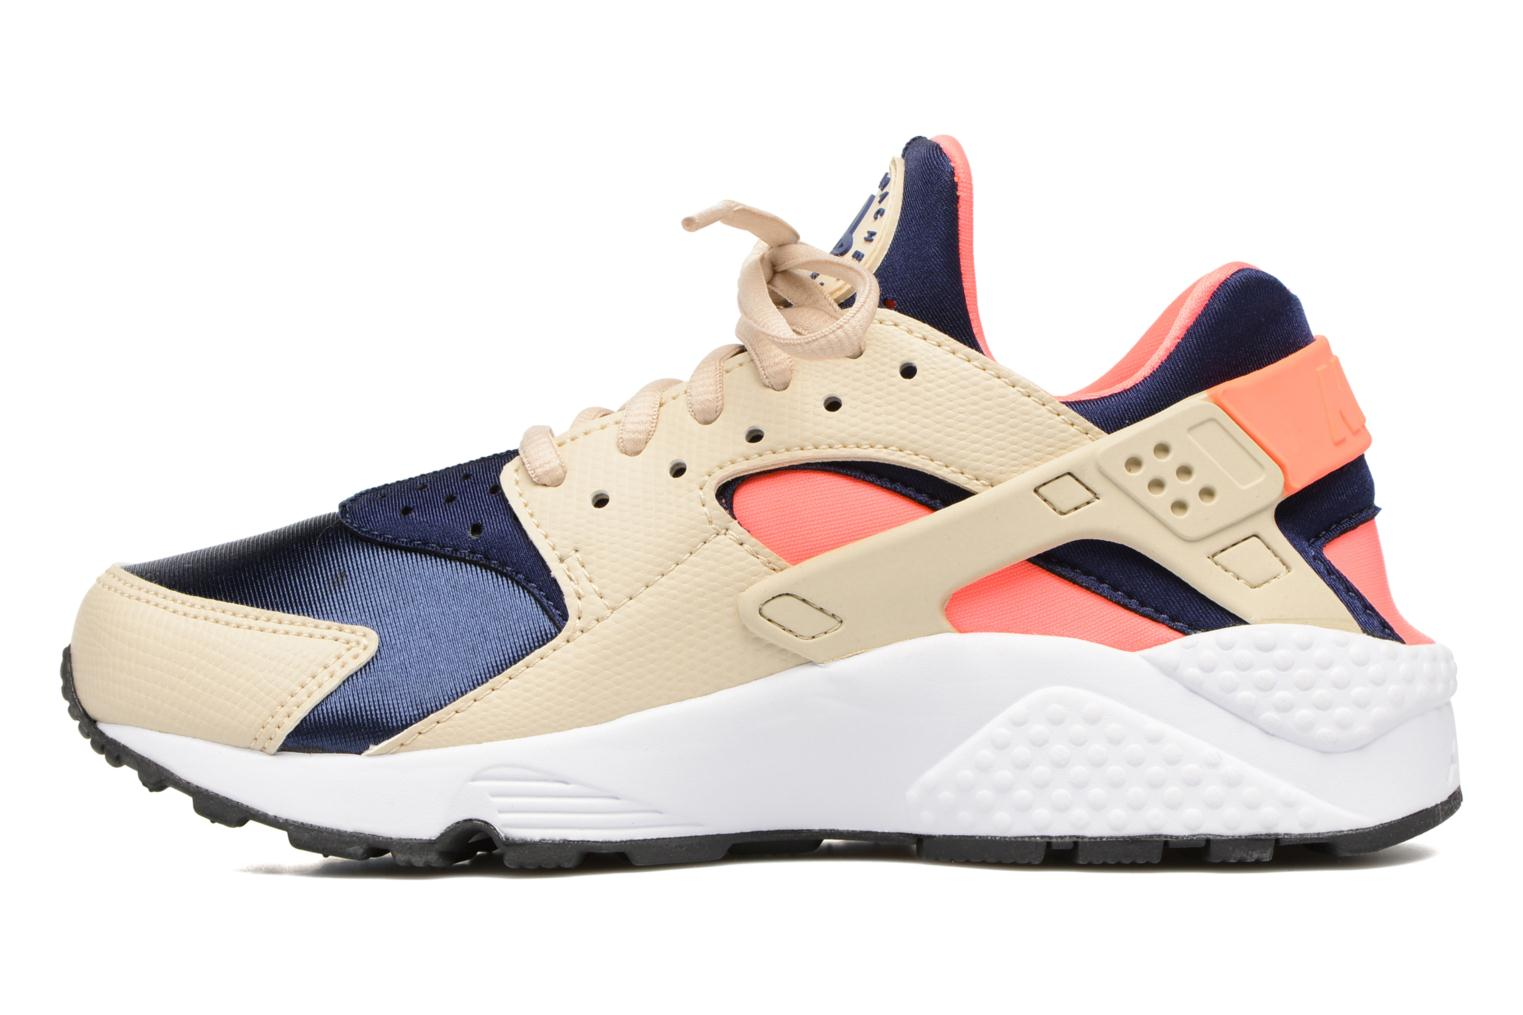 Wmns Air Huarache Run Oatmeal/Binary Blue-Lava Glow-Black